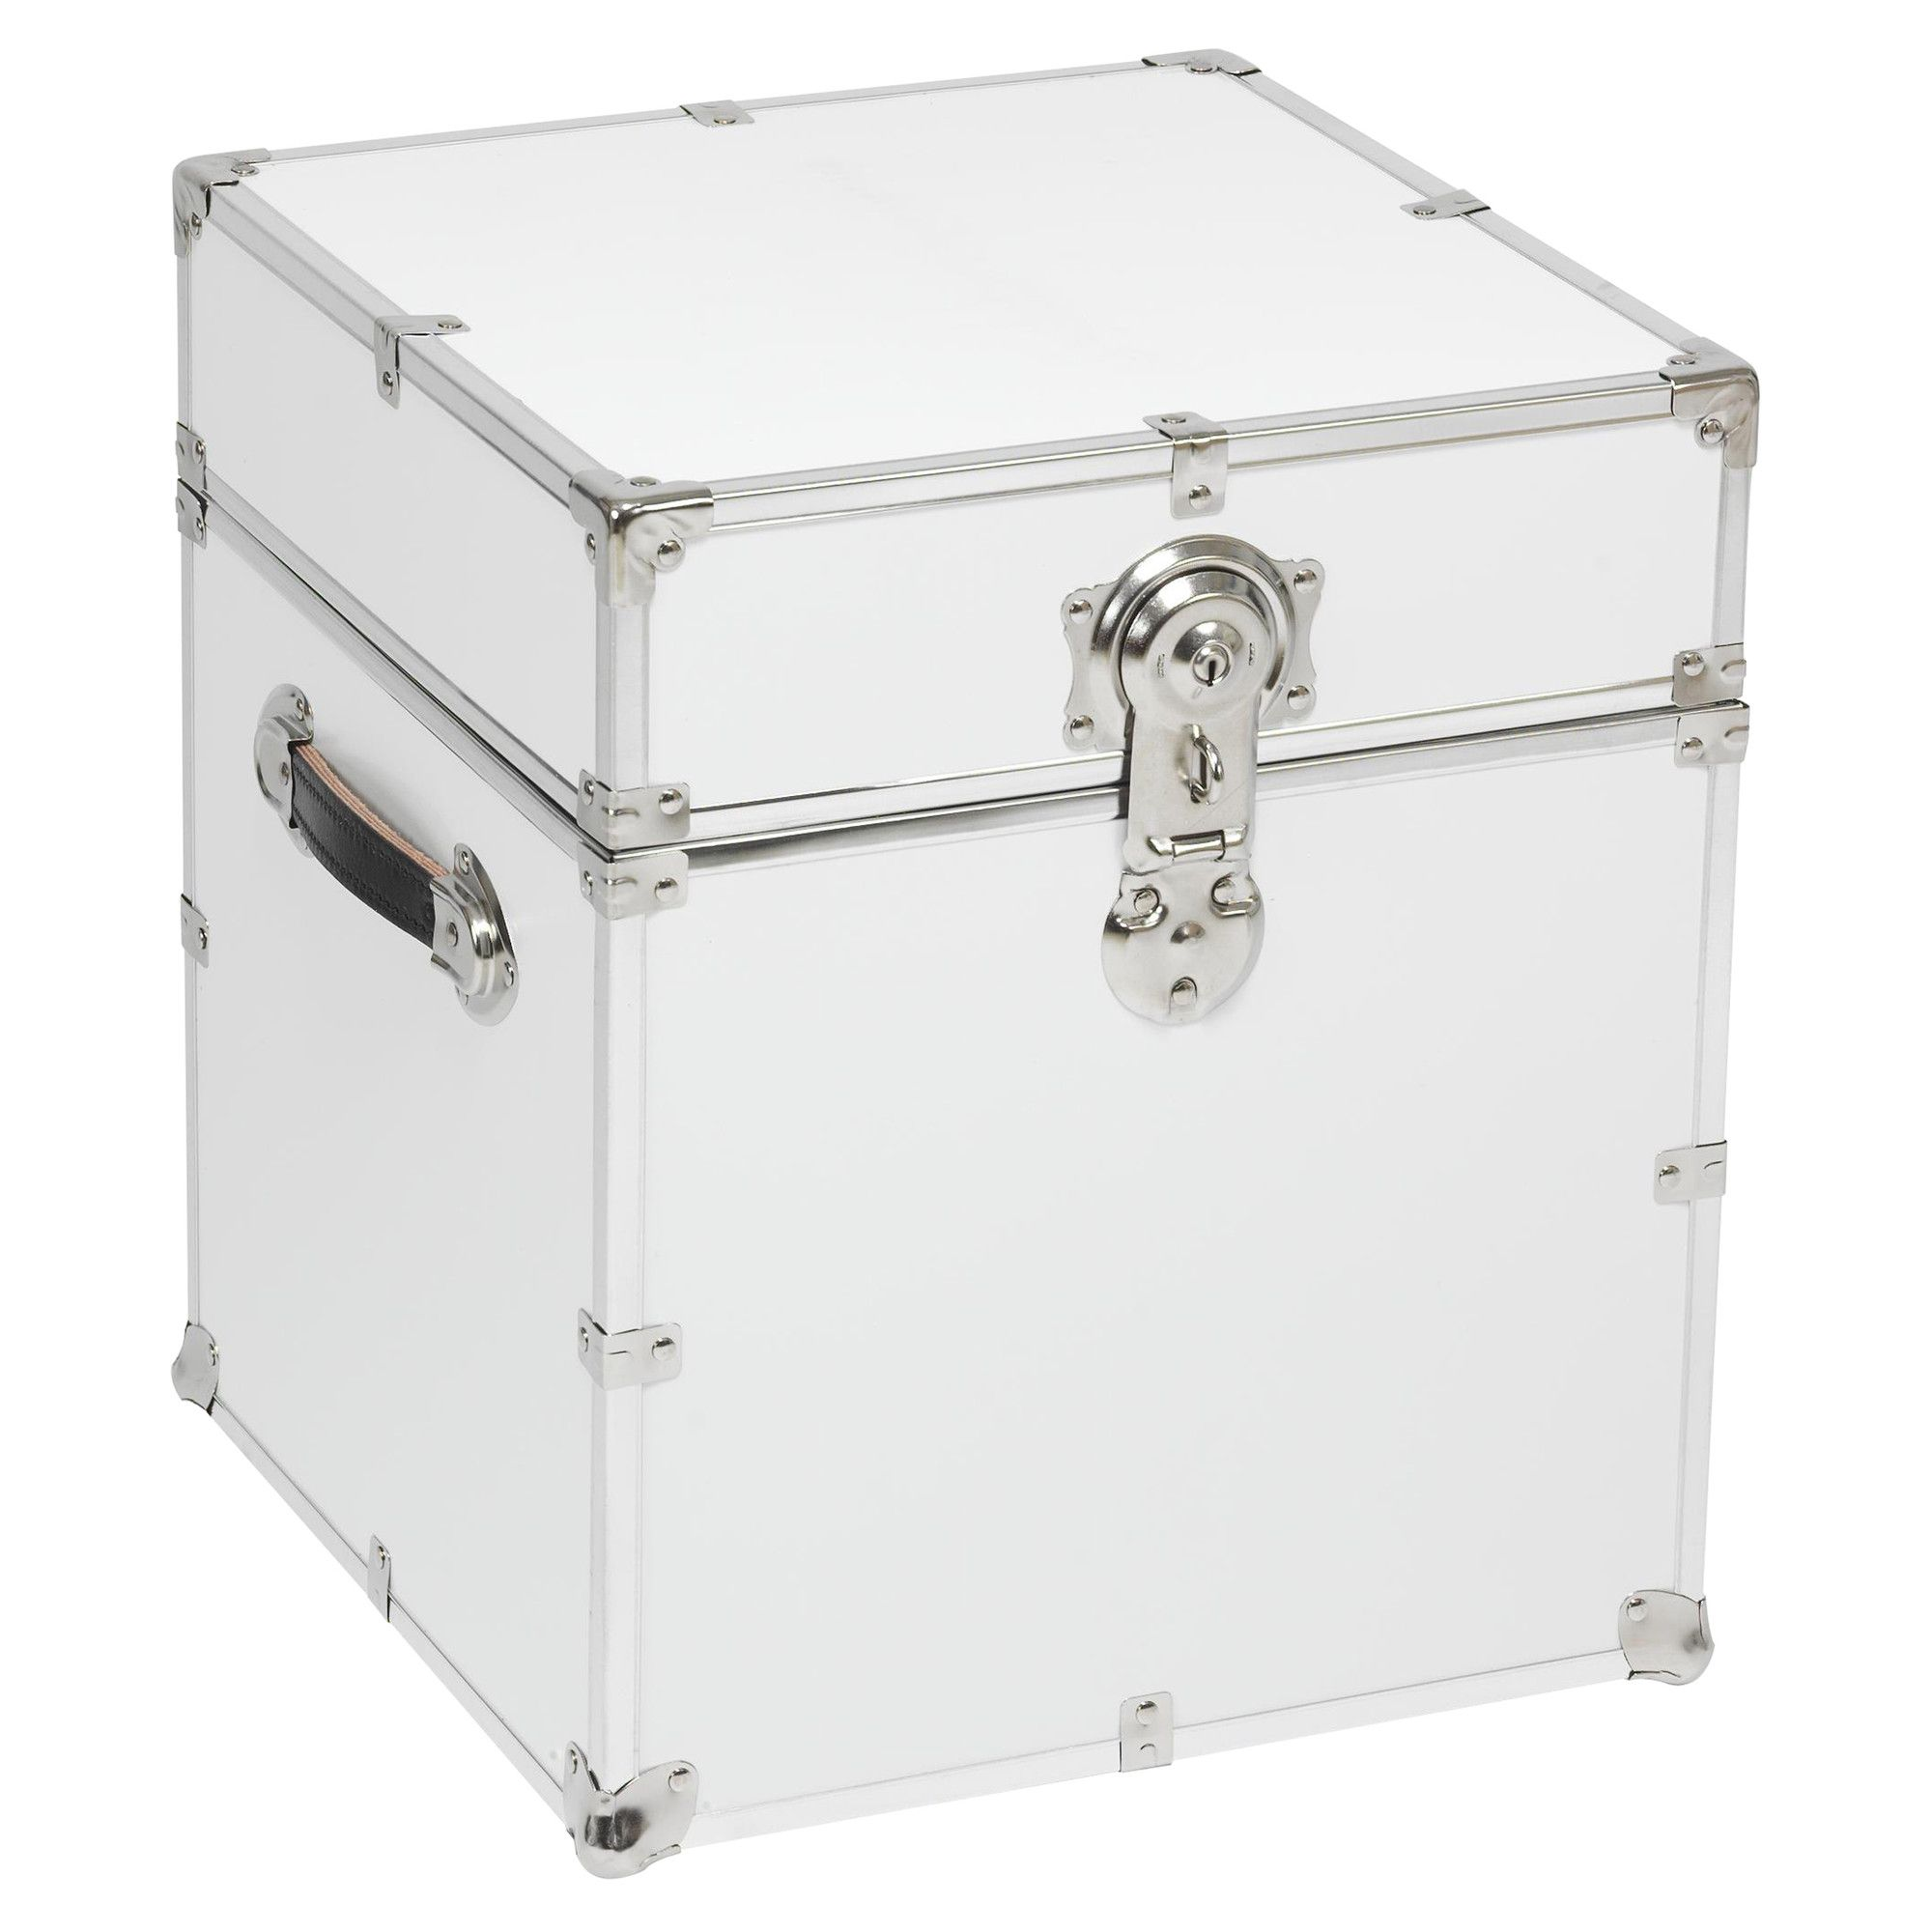 Beau Stanley Case Works Cube White Steel Storage Trunk For Students Living In  Dorm Rooms Or Apartments At College Or Boarding School, On Campus Or Off.